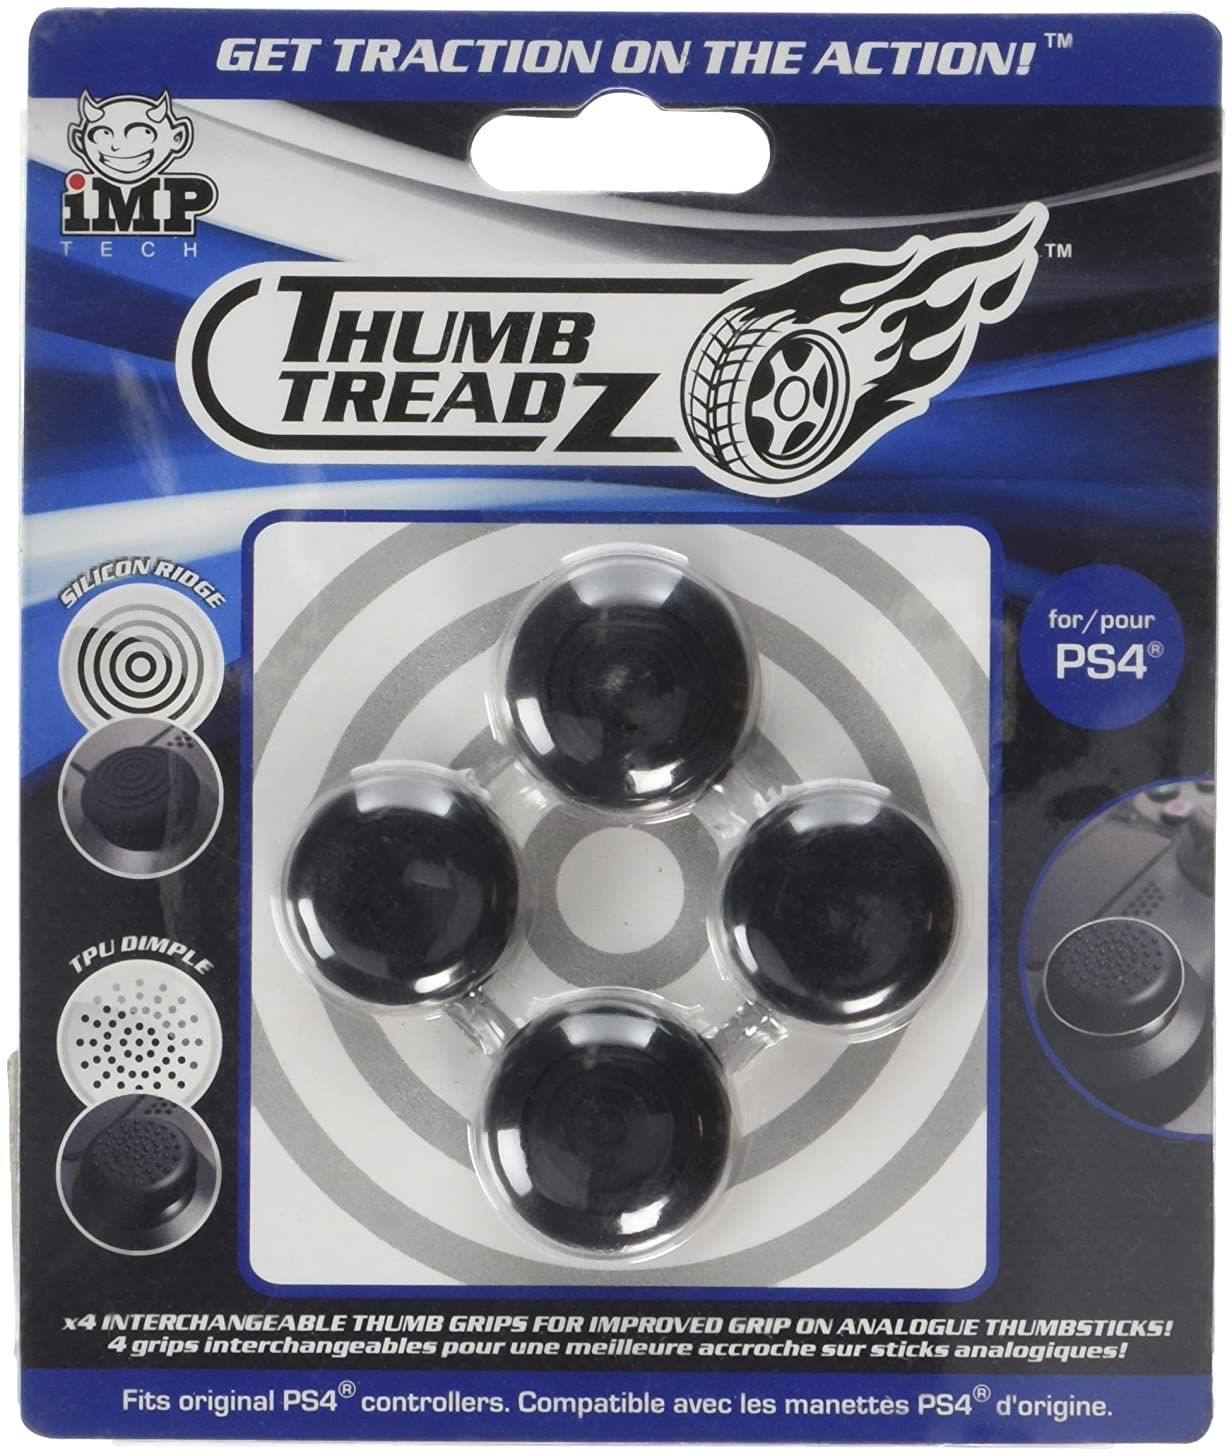 Snakebyte Trigger Treadz - Thumb Treadz for PS4 - 4 Pack Thumb Grips - Analog Caps for PlayStation 4 - PlayStation 4